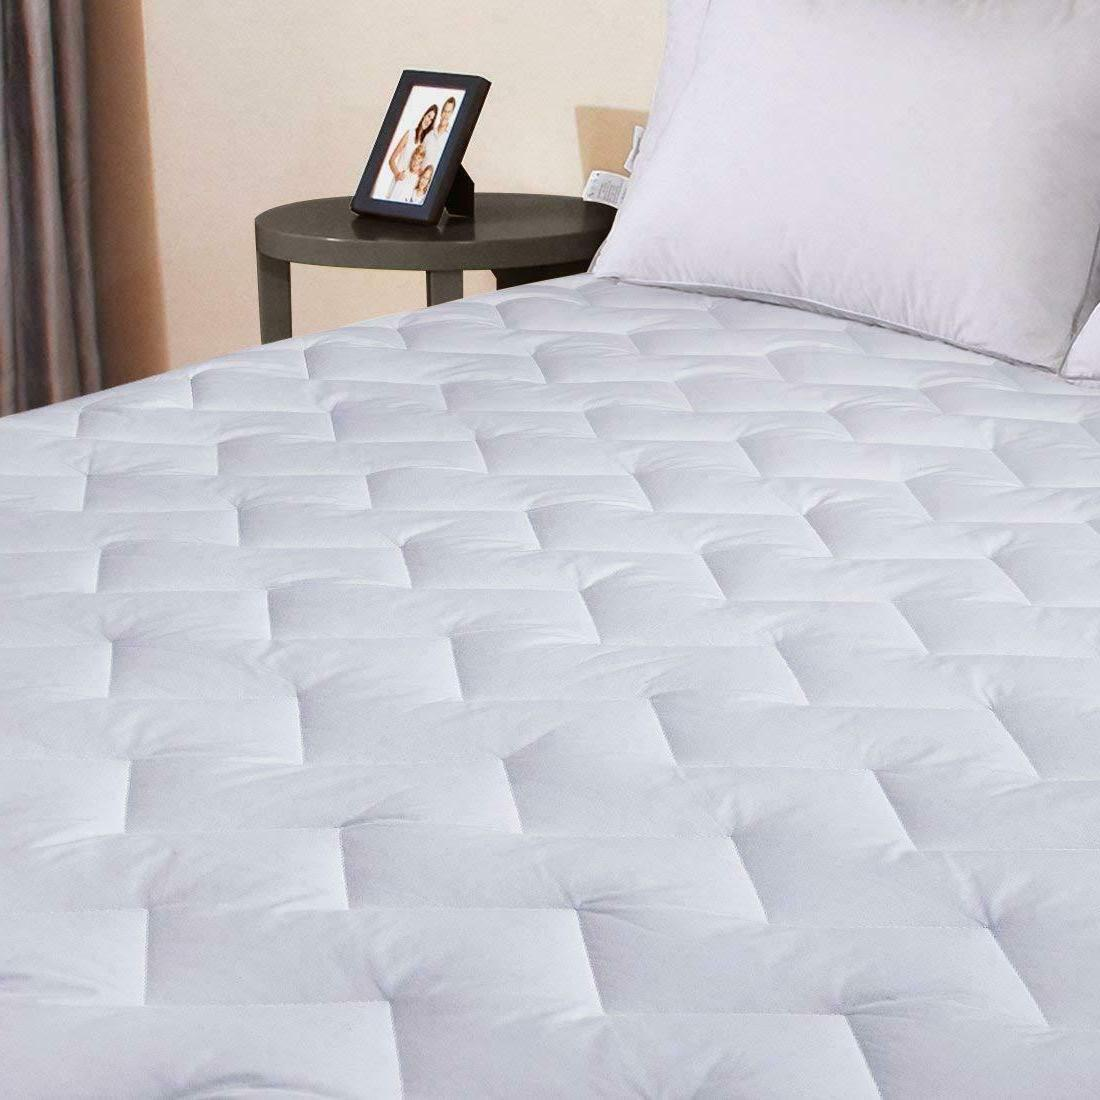 Cotton Topper Protector Quilted Fitted King Queen Full